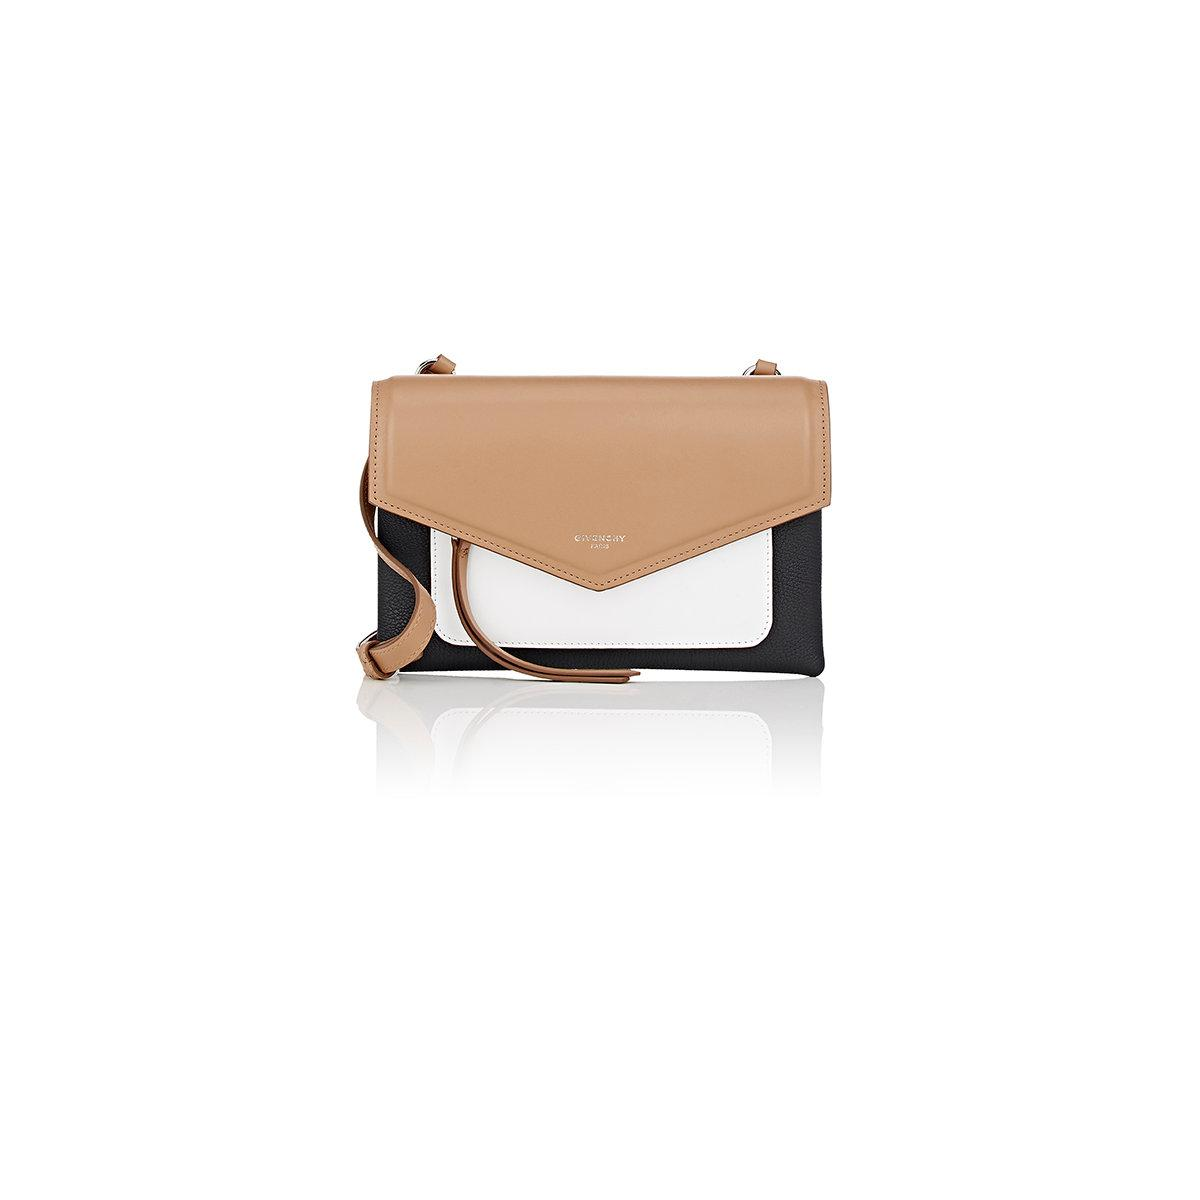 7a816531d7 Givenchy Duetto Crossbody Bag in White - Lyst